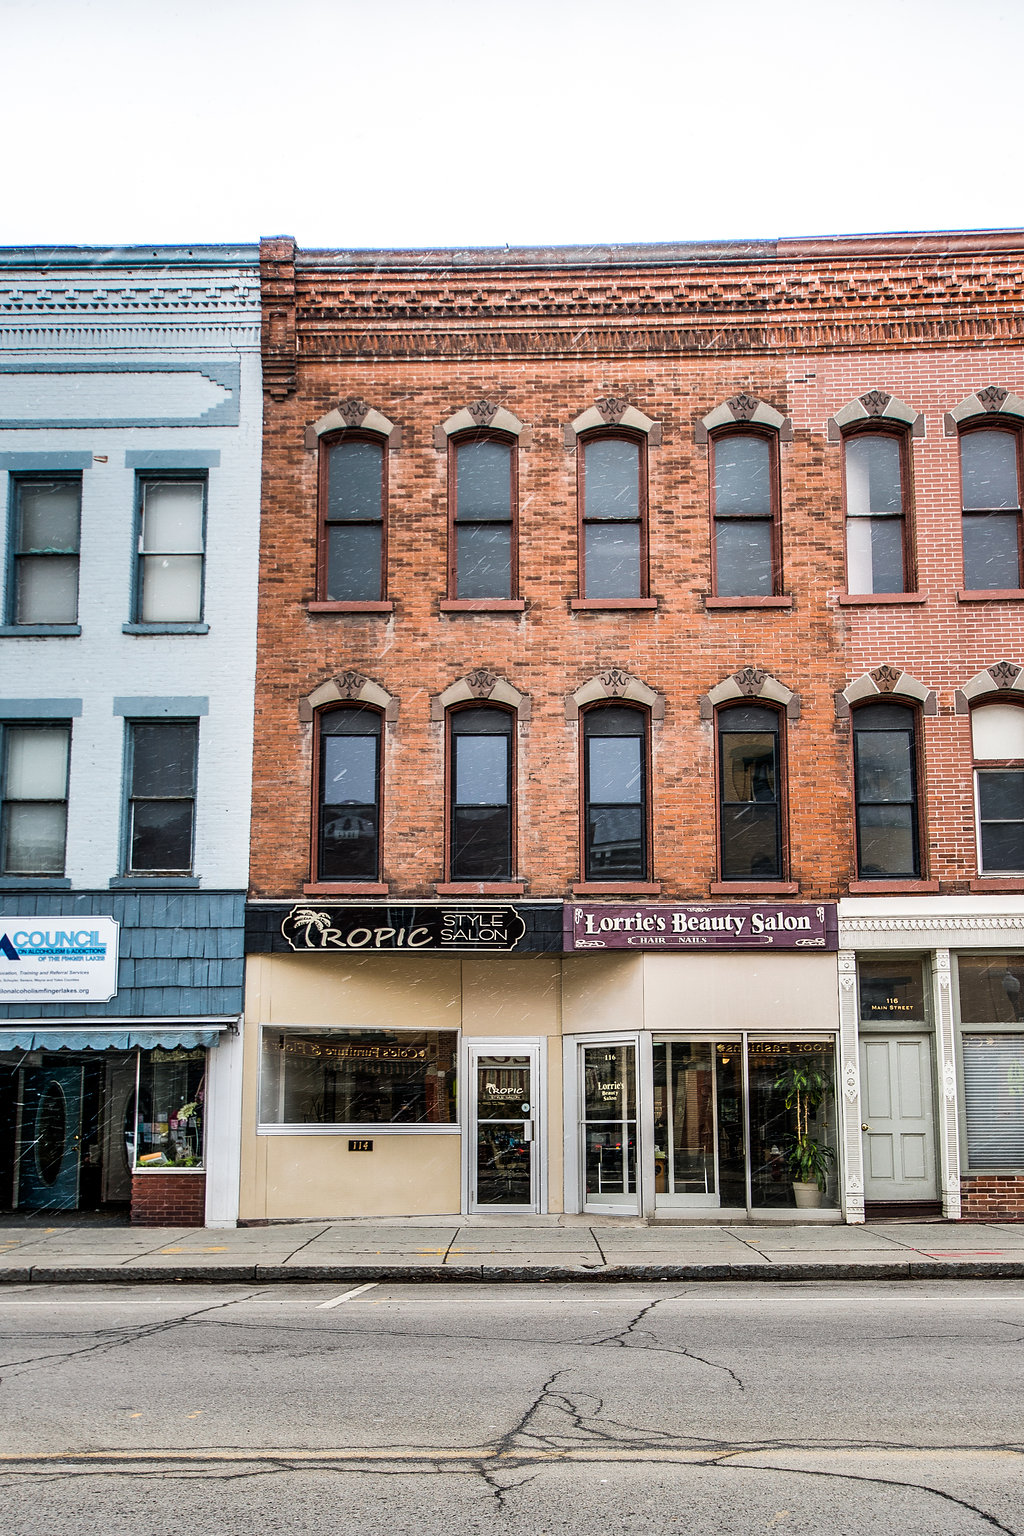 114 Main St, Sarah Welch, Penn Yan, Commercial Real Estate For Sale.jpg